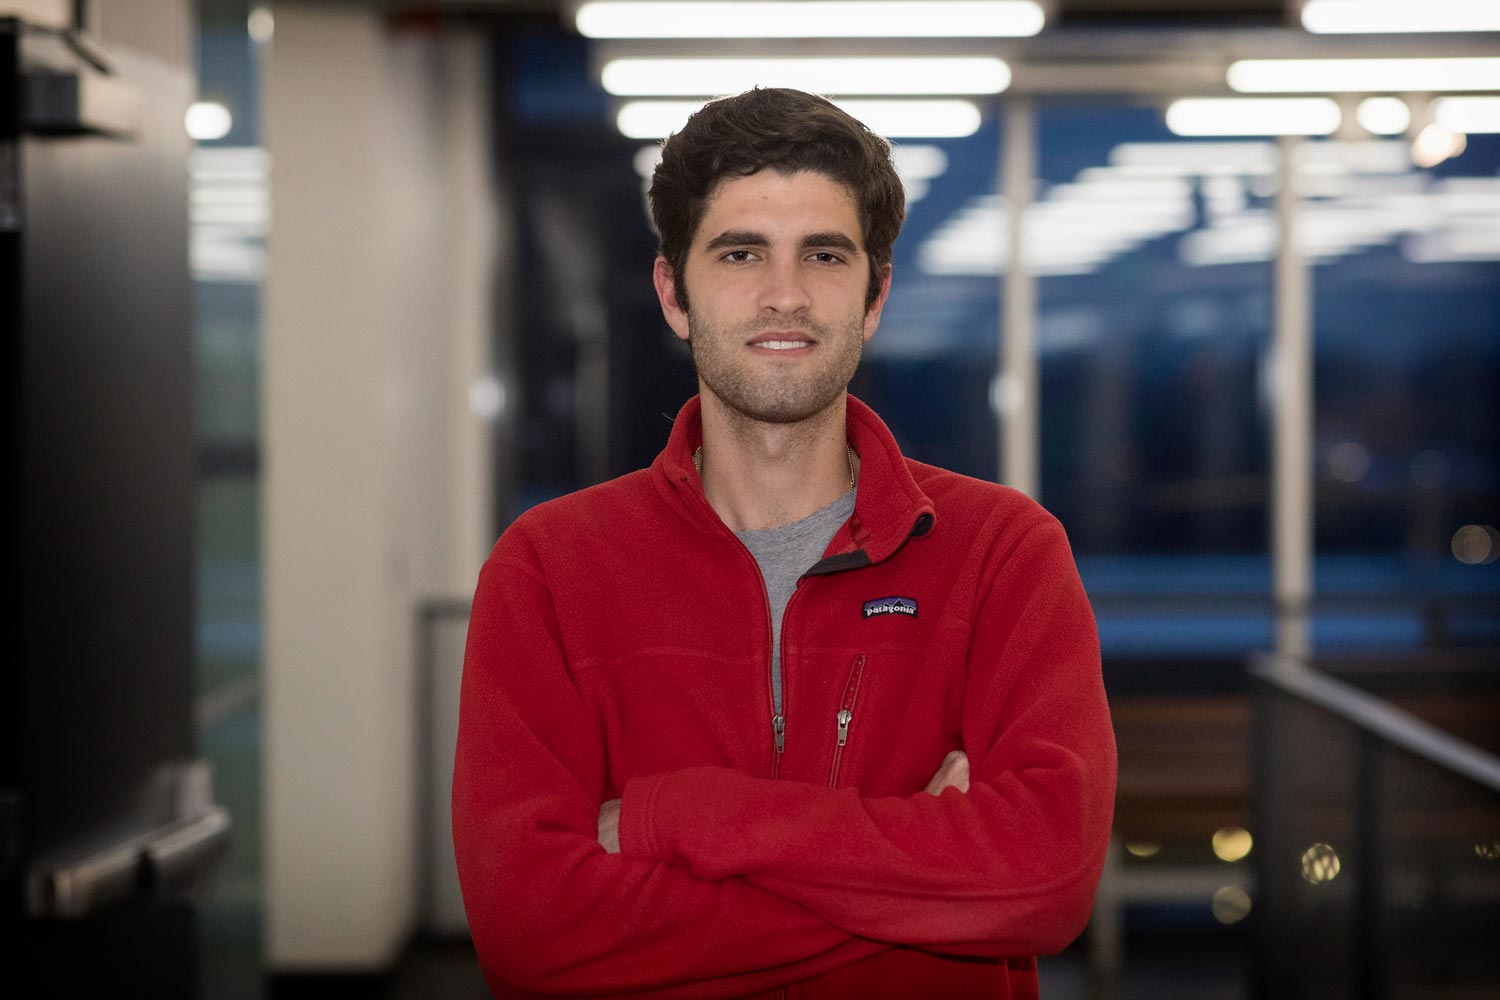 Victor Rodriguez believes WaBu is scalable for other universities around the country.